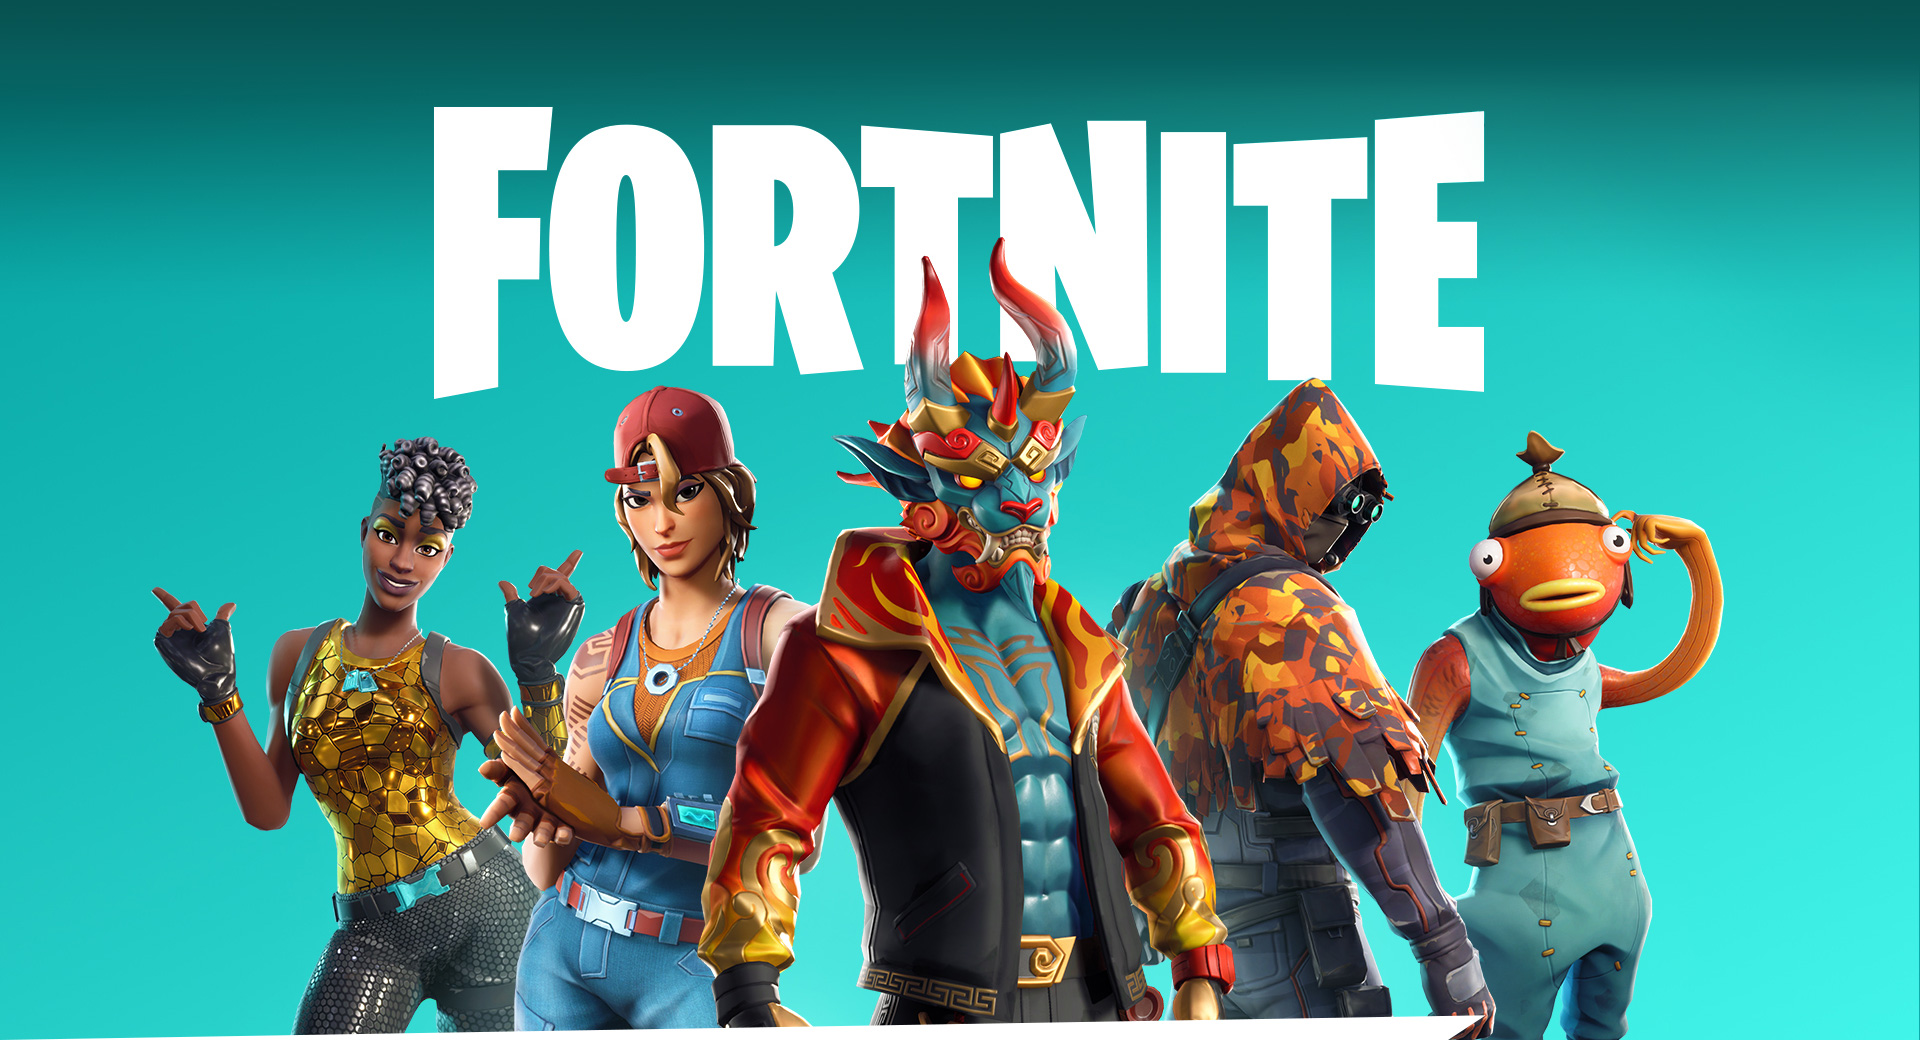 Guida a Fortnite di Xbox: 5 personaggi di Fortnite in piedi davanti al logo di Fortnite